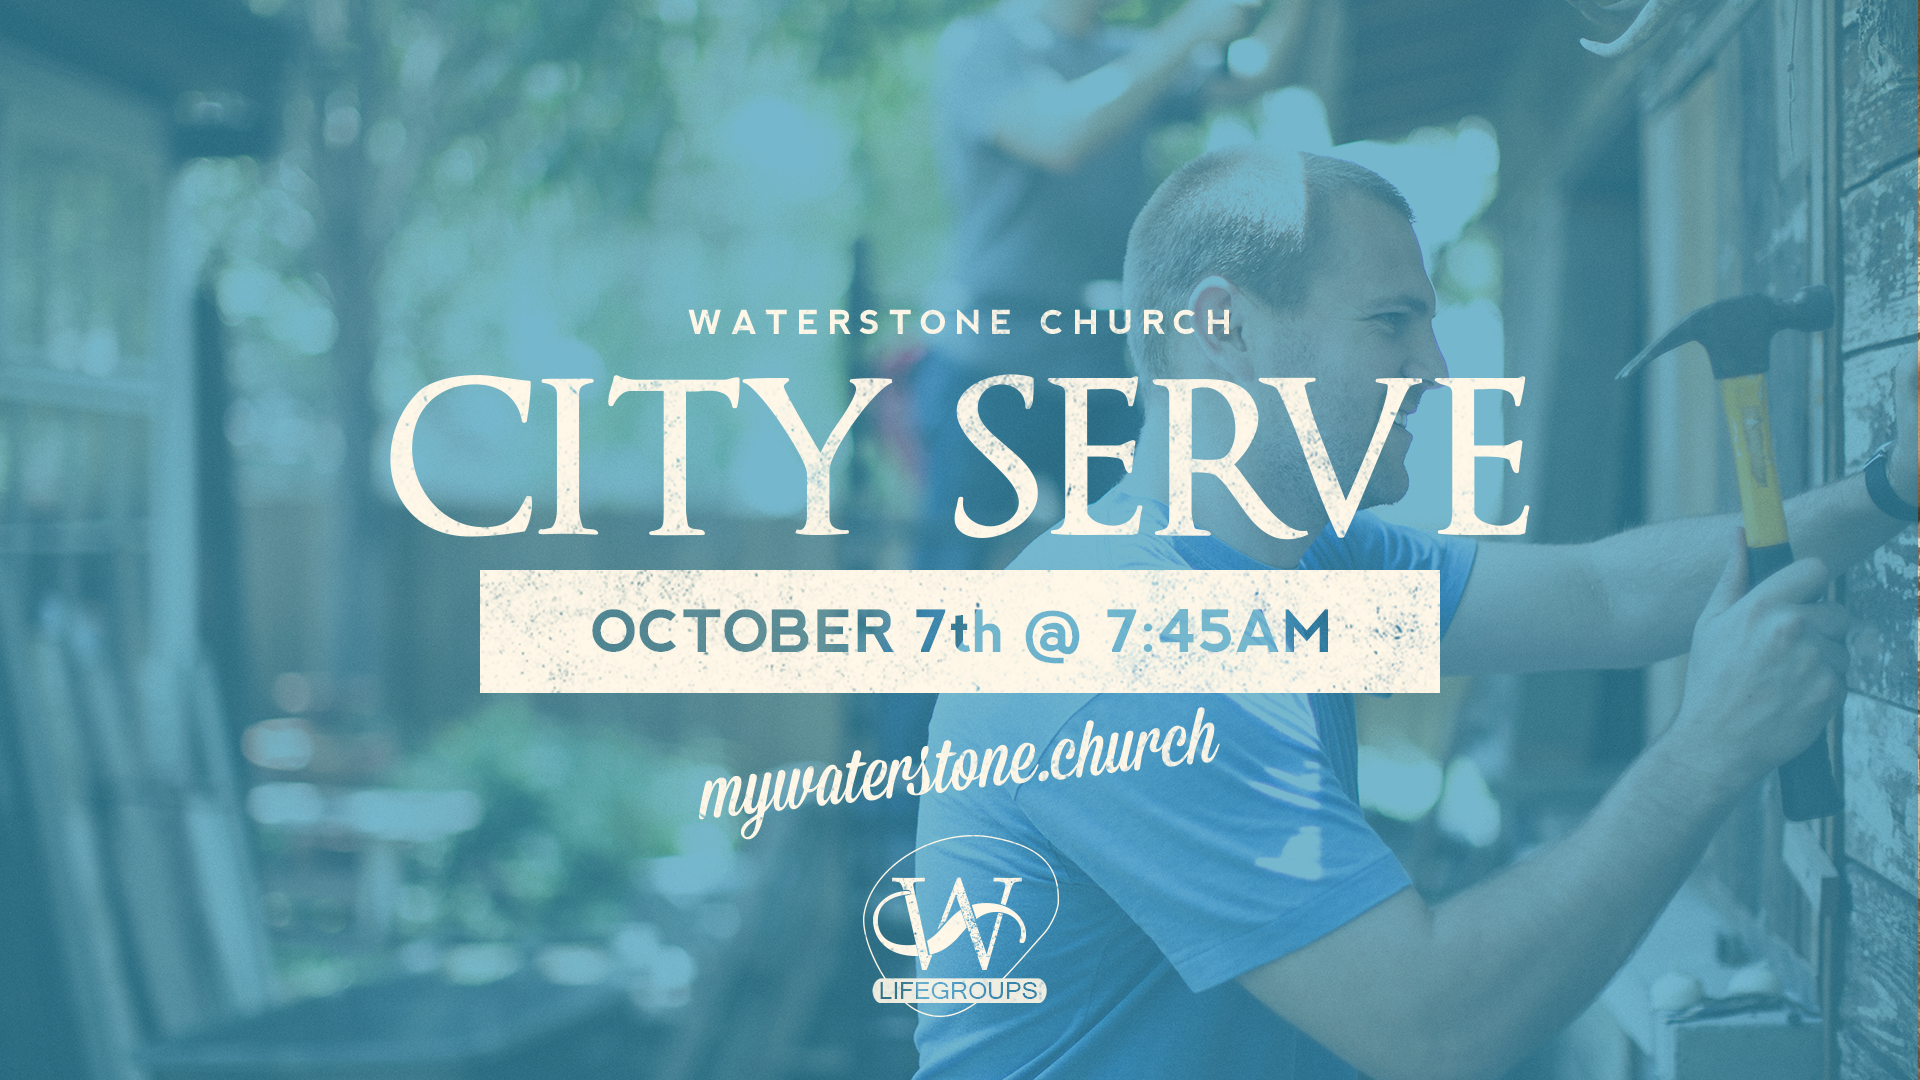 City serve october